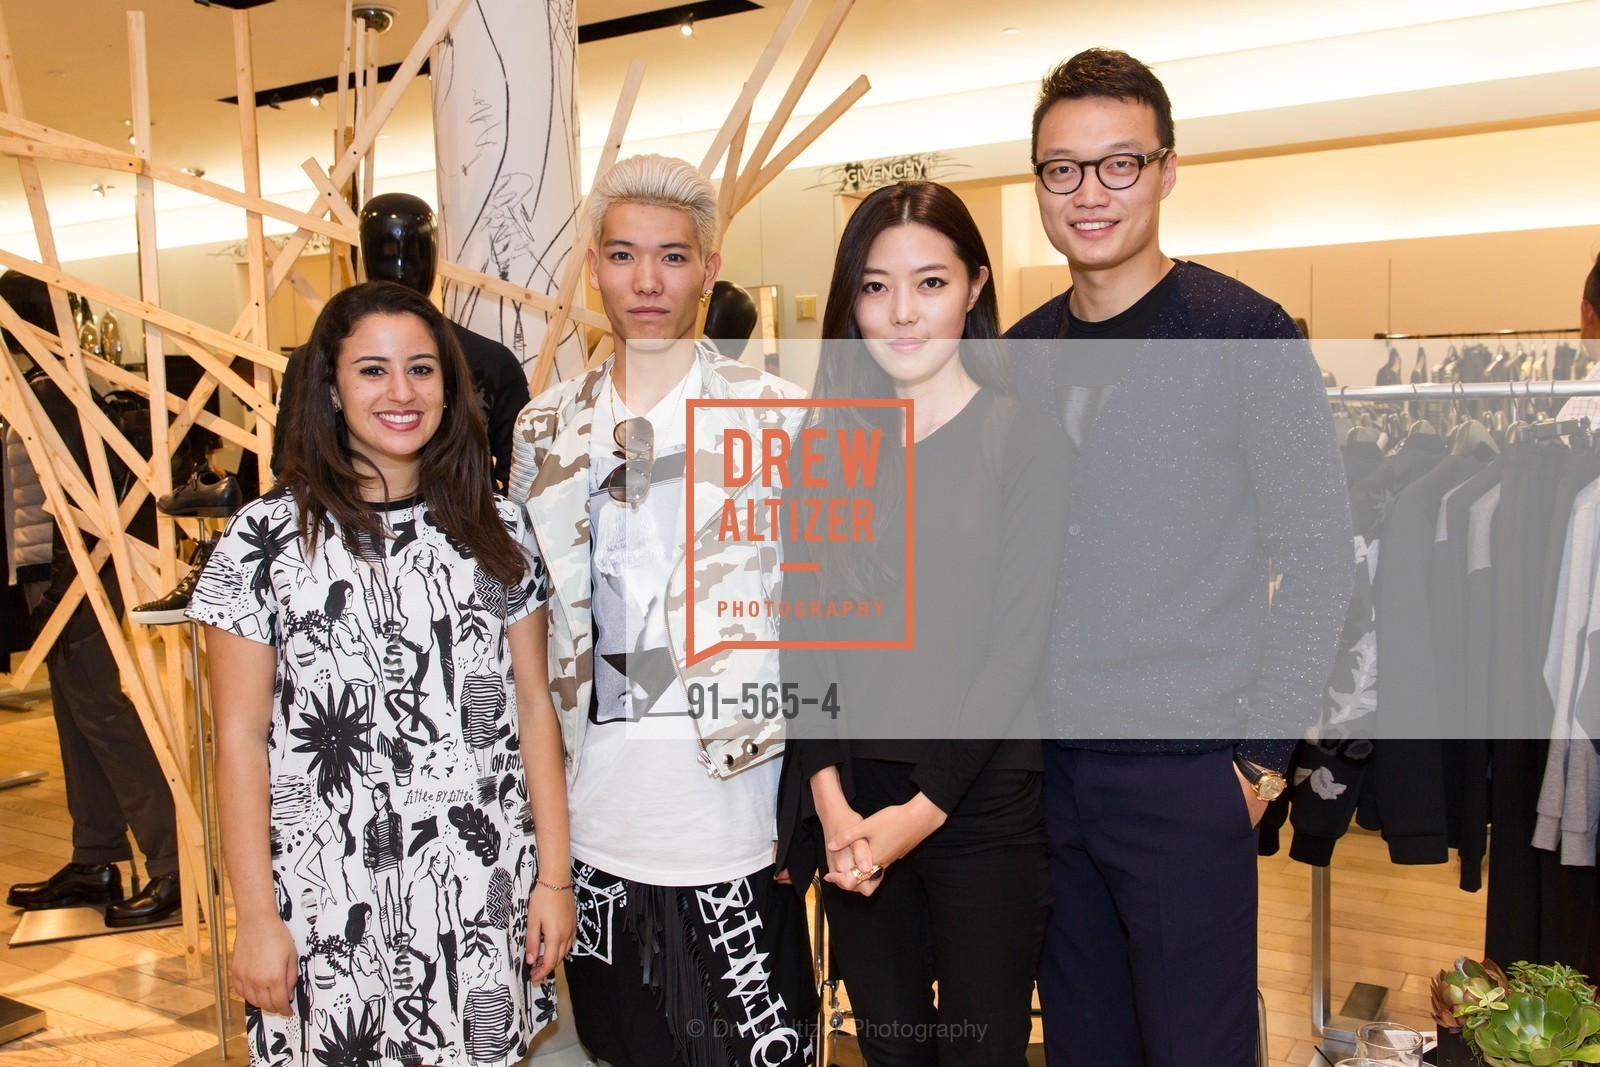 Diana Kalaji, Ryo Hidaka, Suki Shen, Louise Gao, SAKS FIFTH AVENUE Hosts The GLAAD GALA Kick-Off Party, US, September 12th, 2014,Drew Altizer, Drew Altizer Photography, full-service agency, private events, San Francisco photographer, photographer california